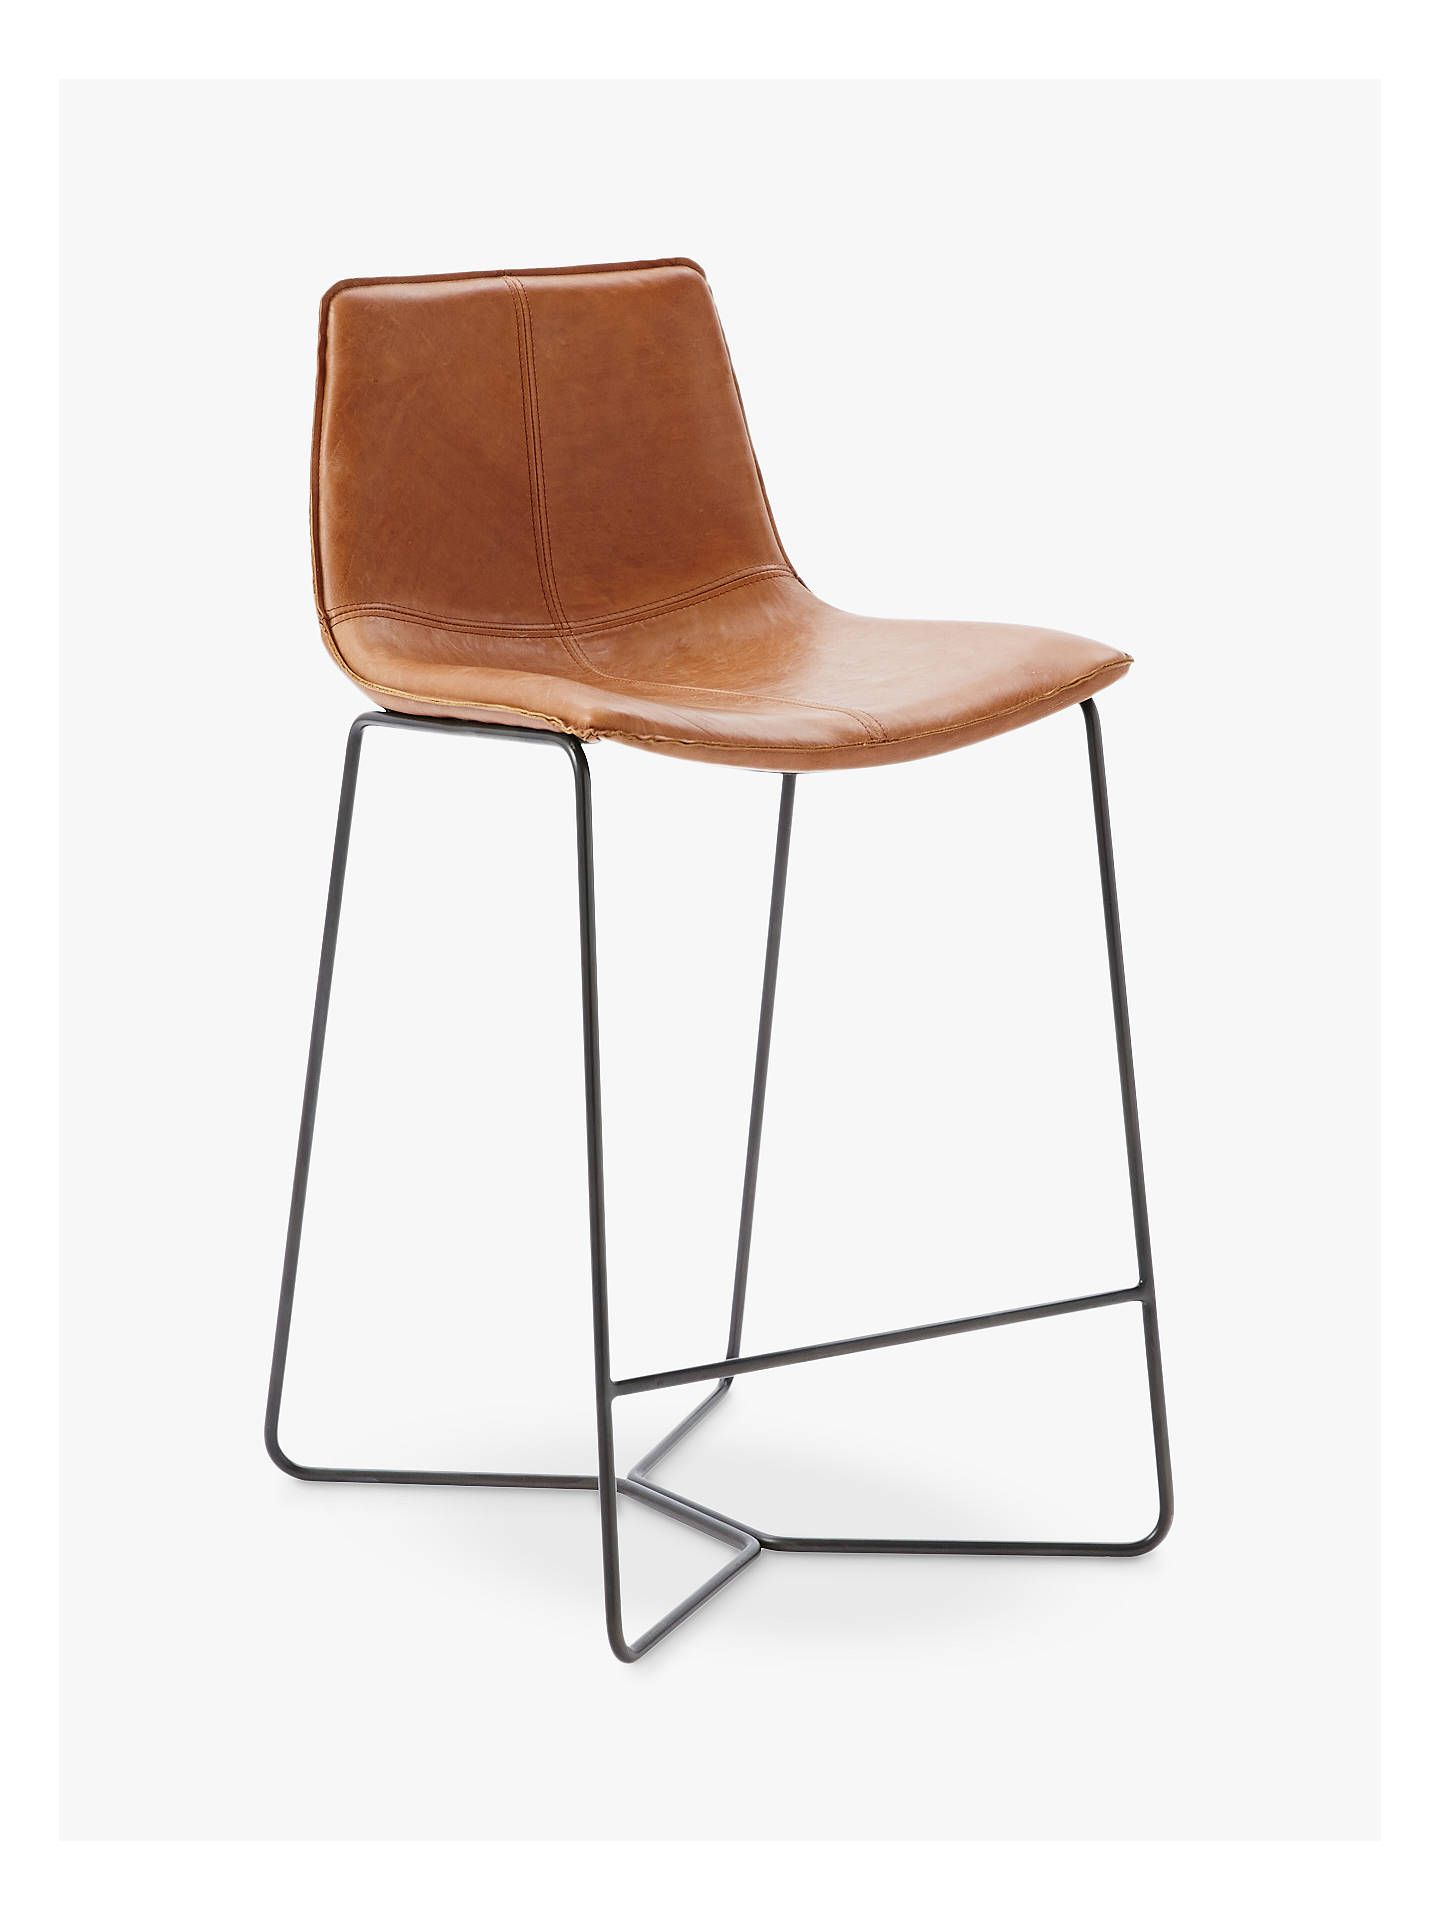 Remarkable West Elm Slope Leather Bar Stool Brown In 2019 Homeowners Beatyapartments Chair Design Images Beatyapartmentscom